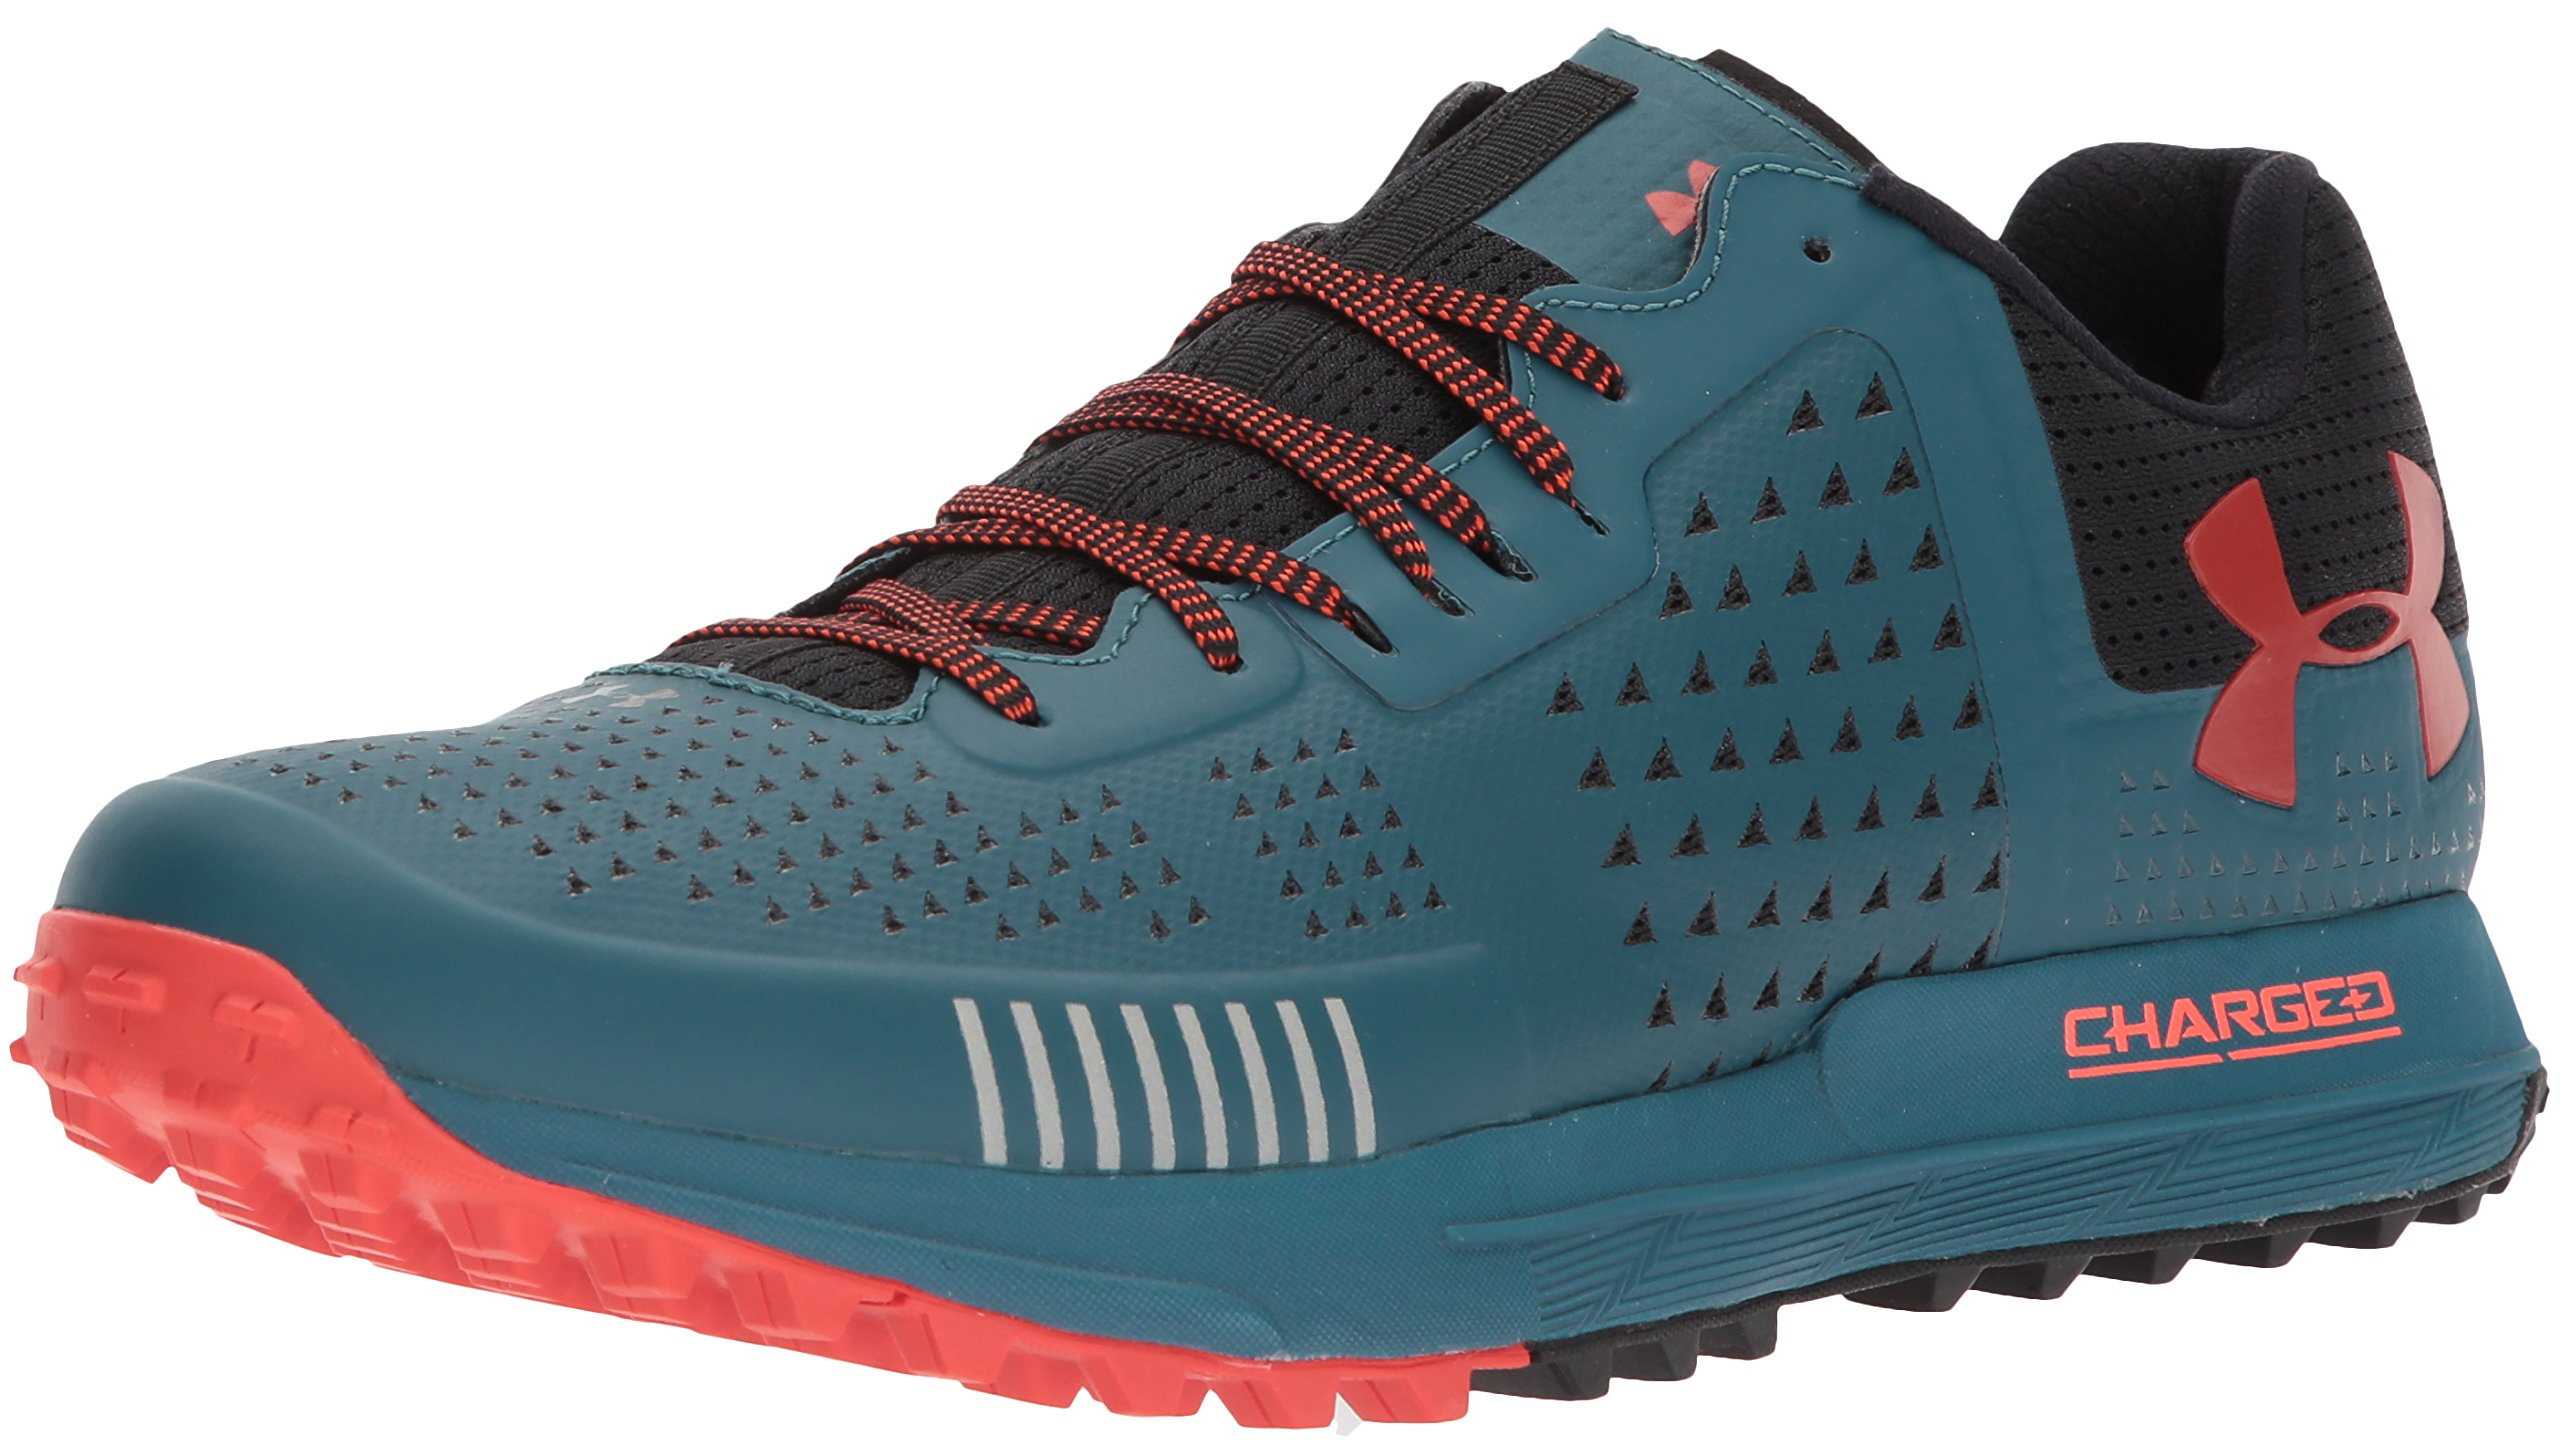 Under Armour Men's Horizon RTT Running Shoe, Tourmaline Teal (300)/Black, 8.5 by Under Armour